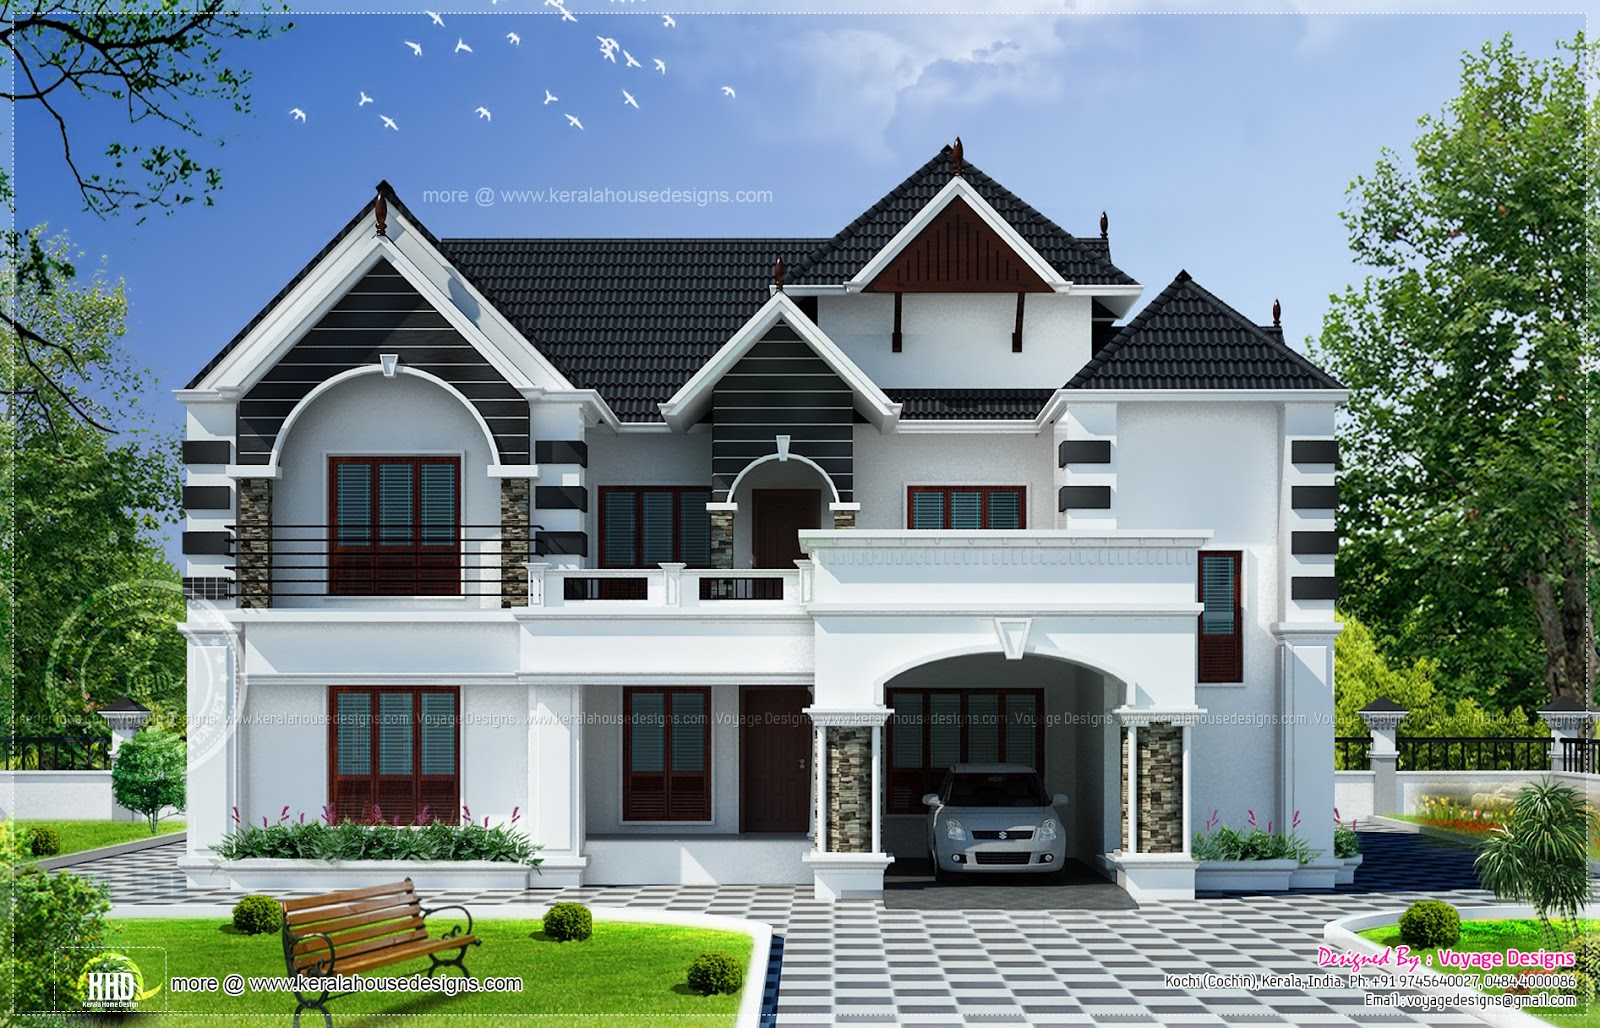 4 bedroom colonial style house kerala home design and for New style home design